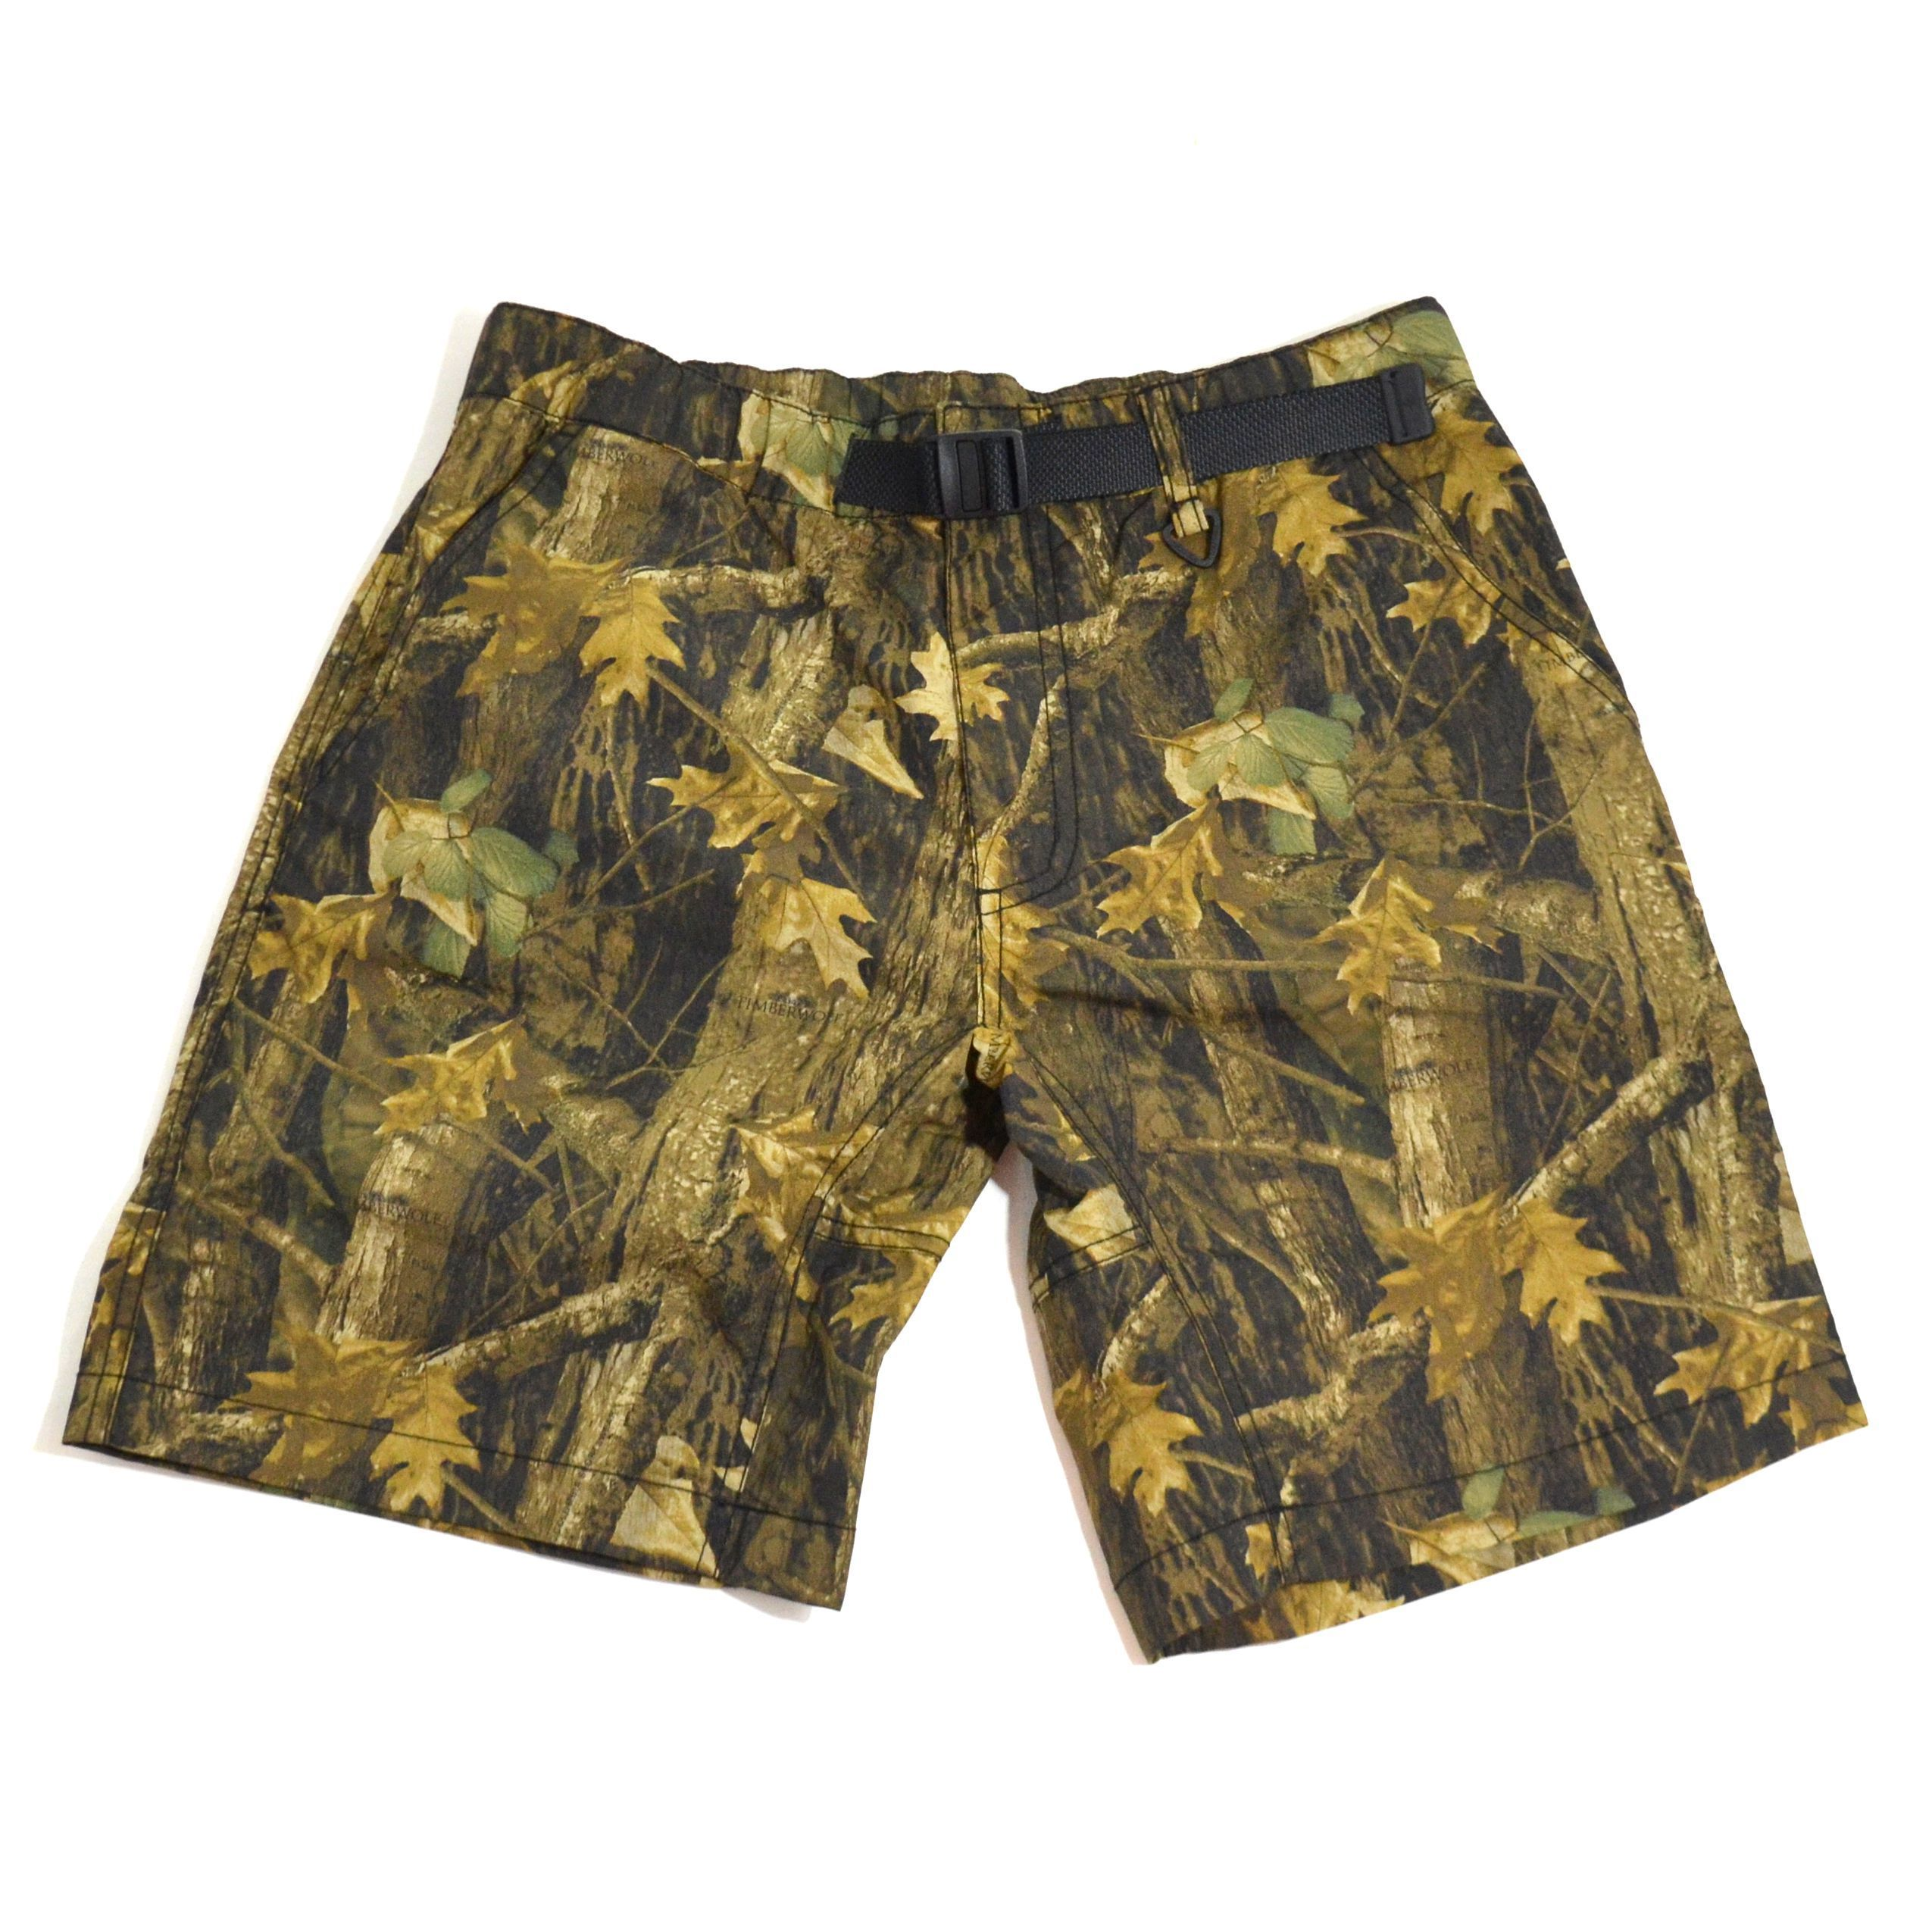 COLUMBIA (NYLON SHORTS) 939